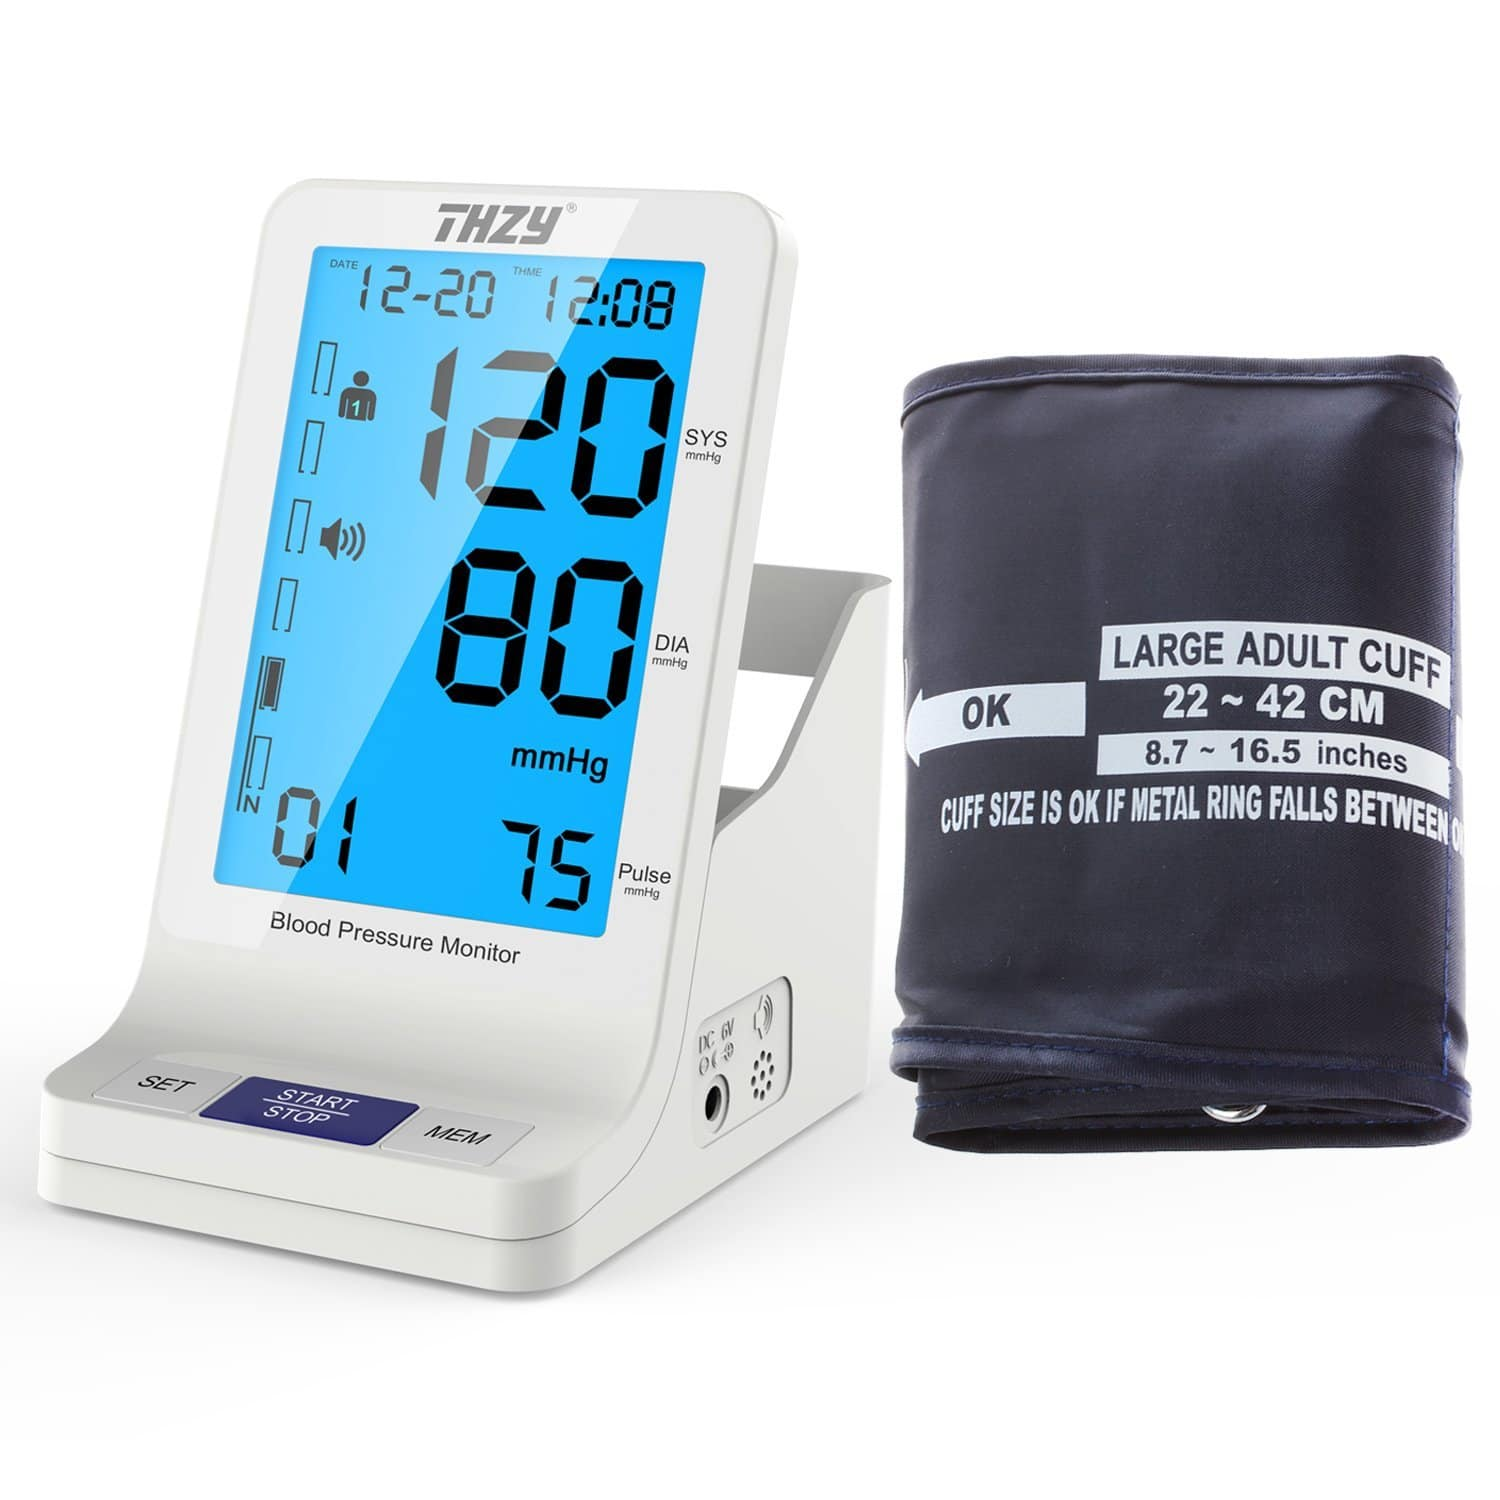 50% OFF AT Amazon on Blood Pressure Monitor with Extra Large Arm Cuff - Automatic Digital FDA Approved Accurate Fast Large Display BP cuff $20